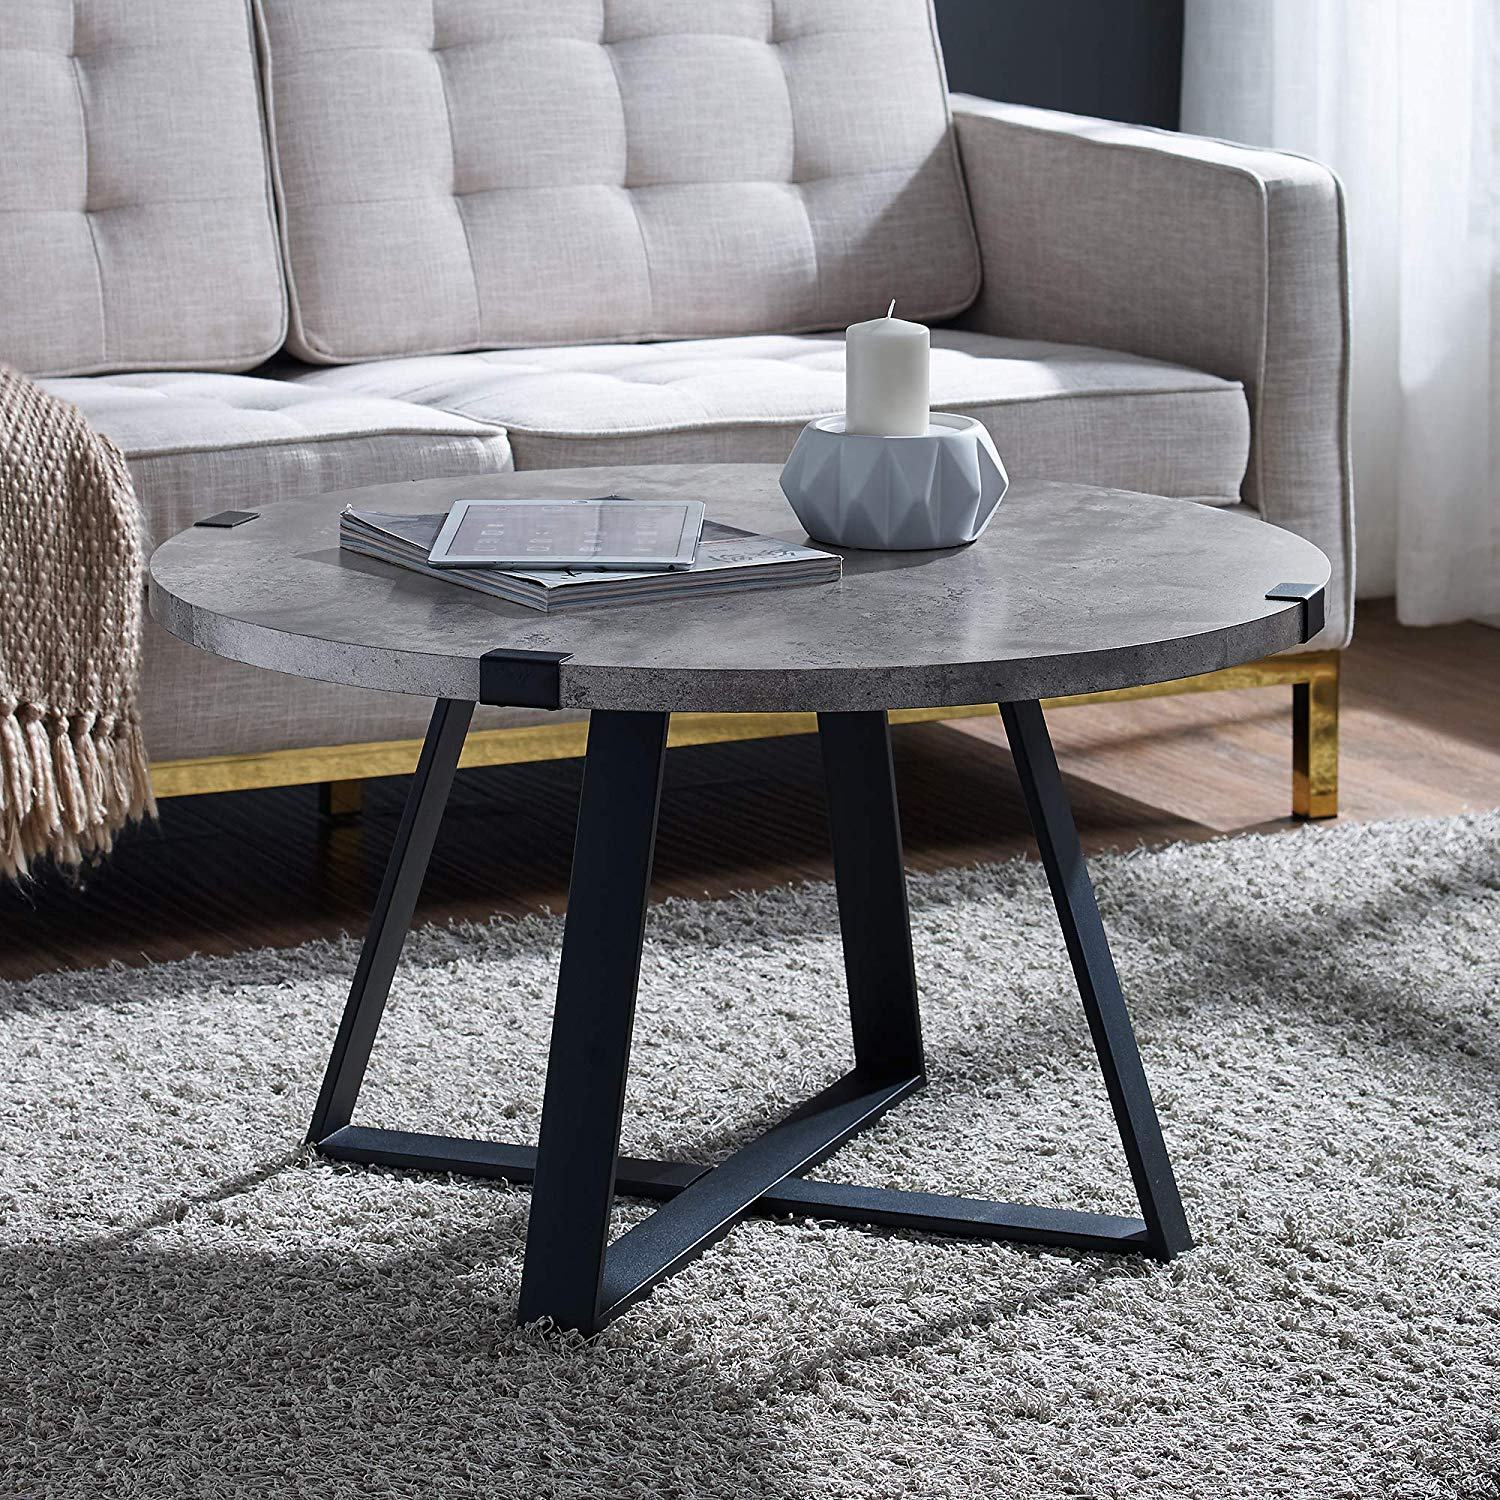 furniture coffee table dark faux concrete room essentials mixed material accent kitchen dining blue mosaic patio round gold small and chairs foot long console teak rocking skinny